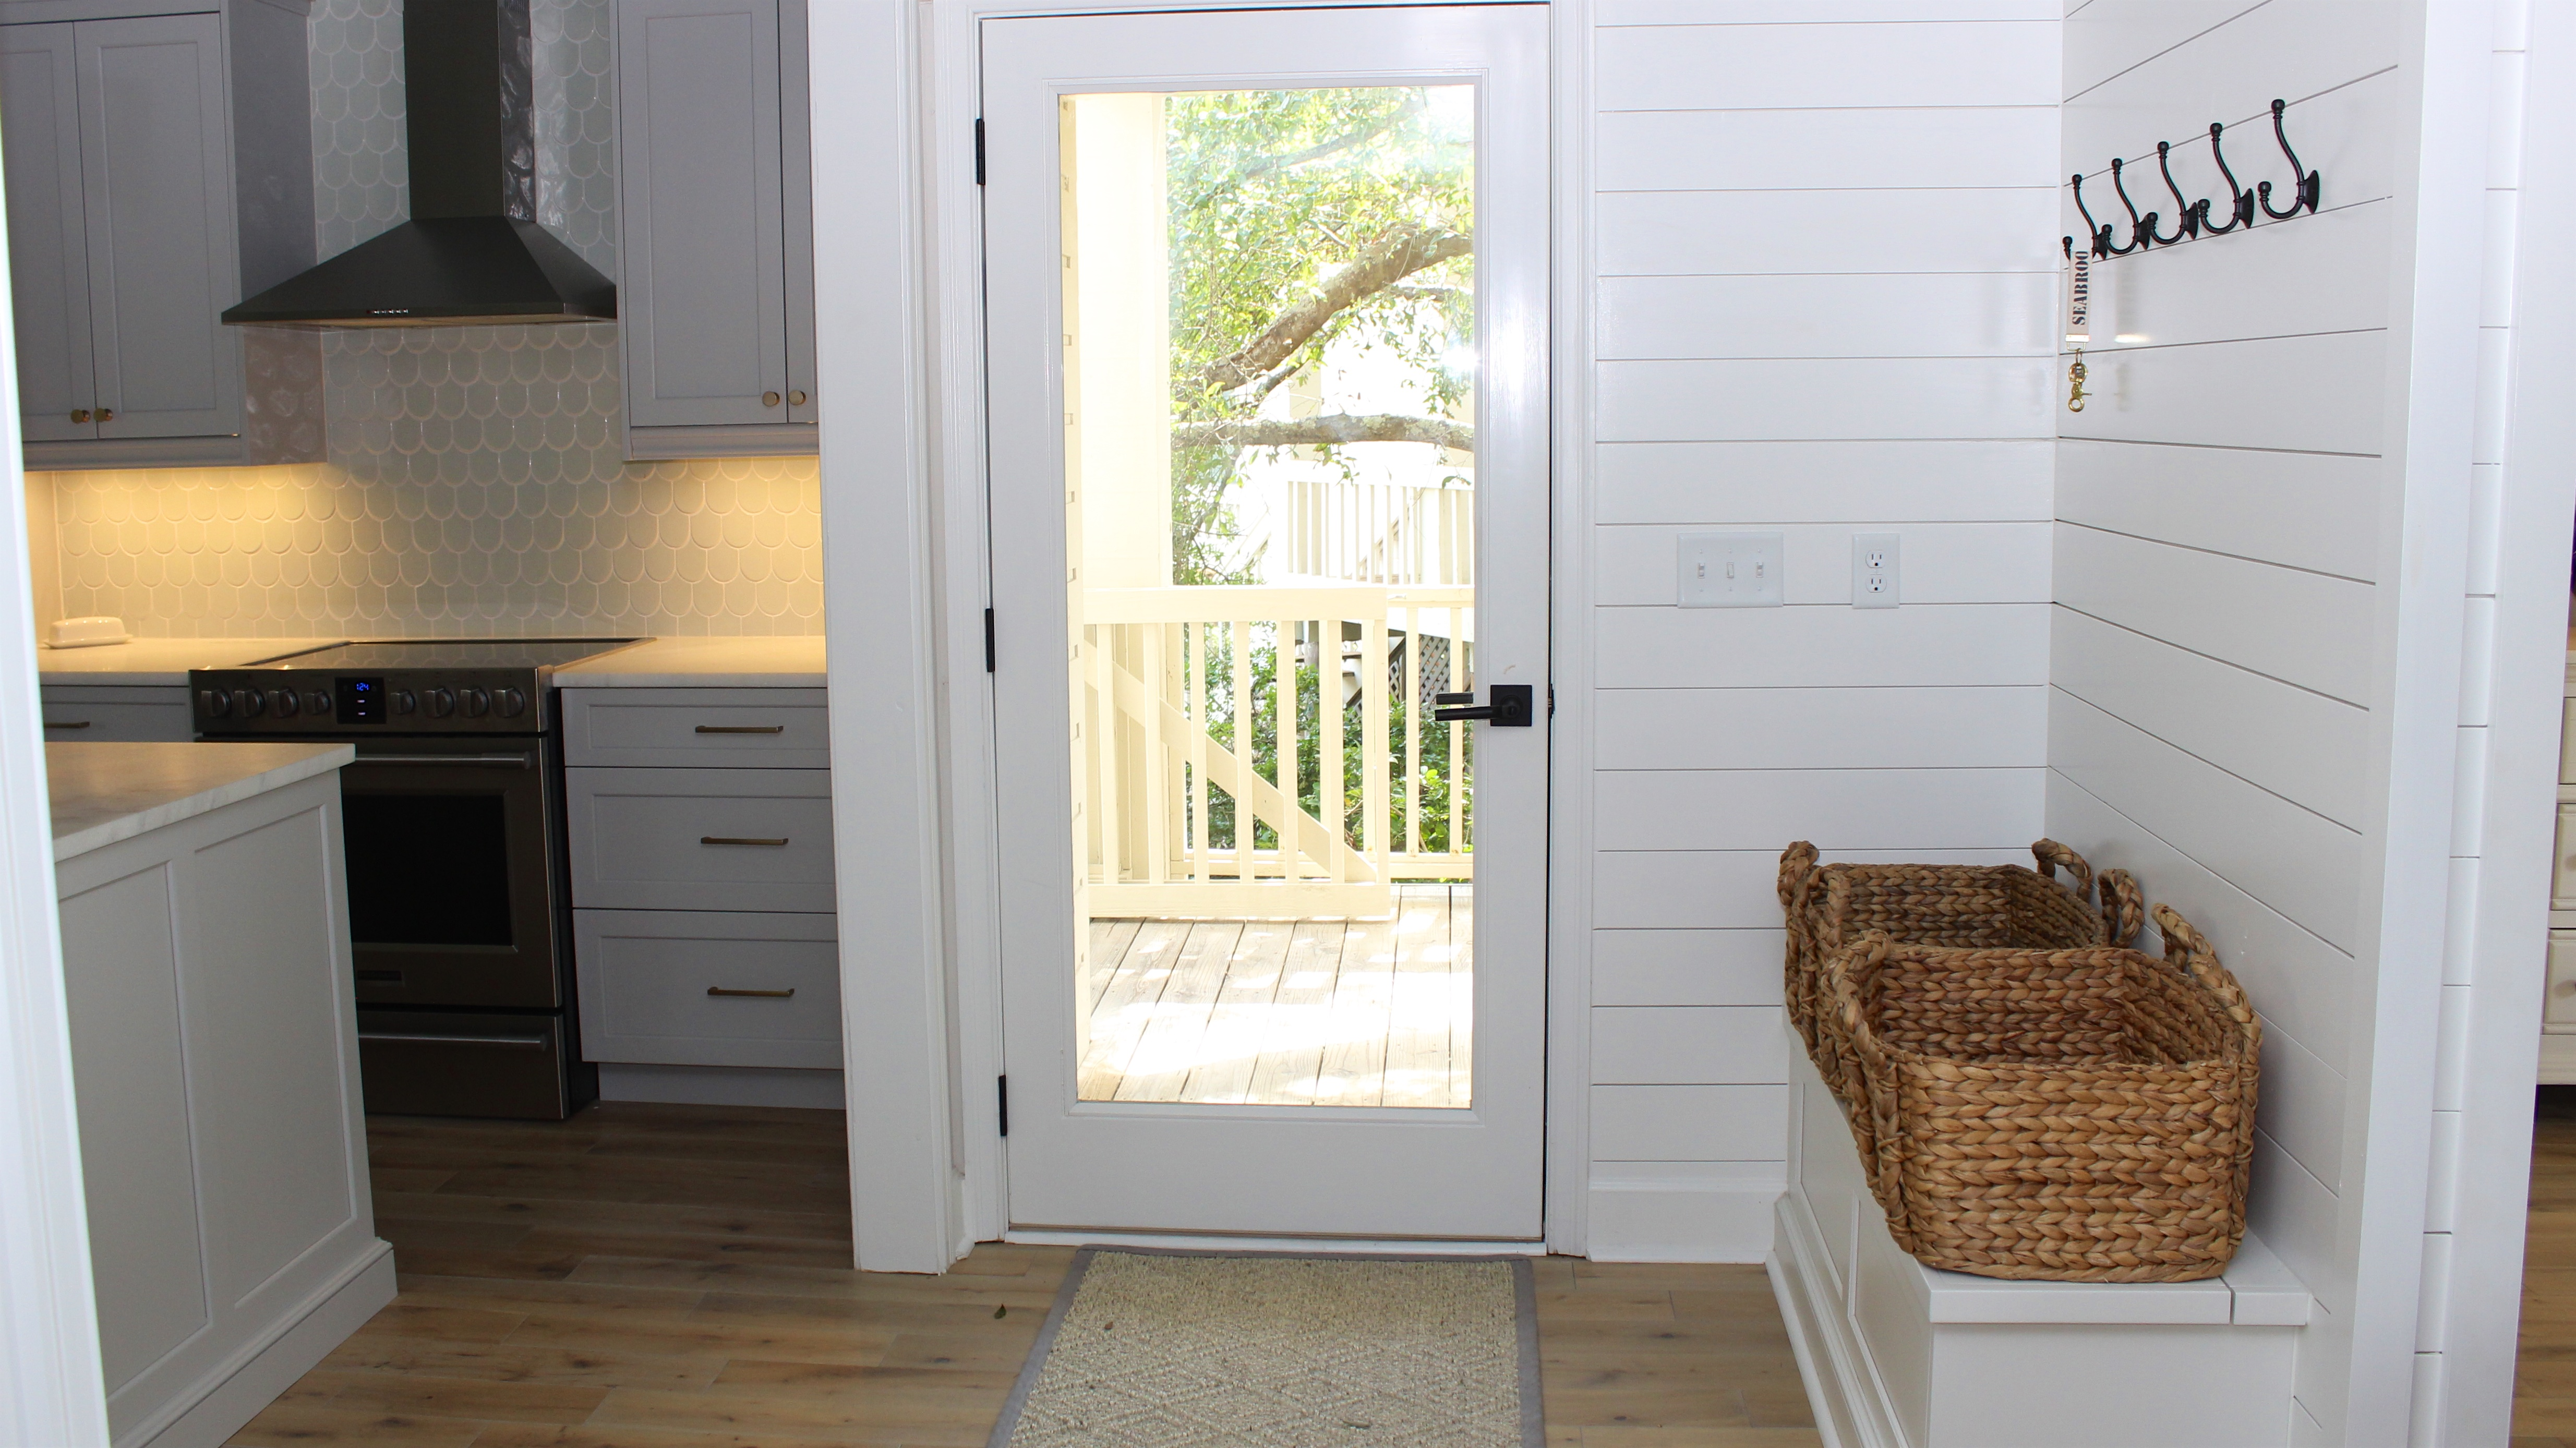 Shiplap paneling and a bench create a welcoming entry.